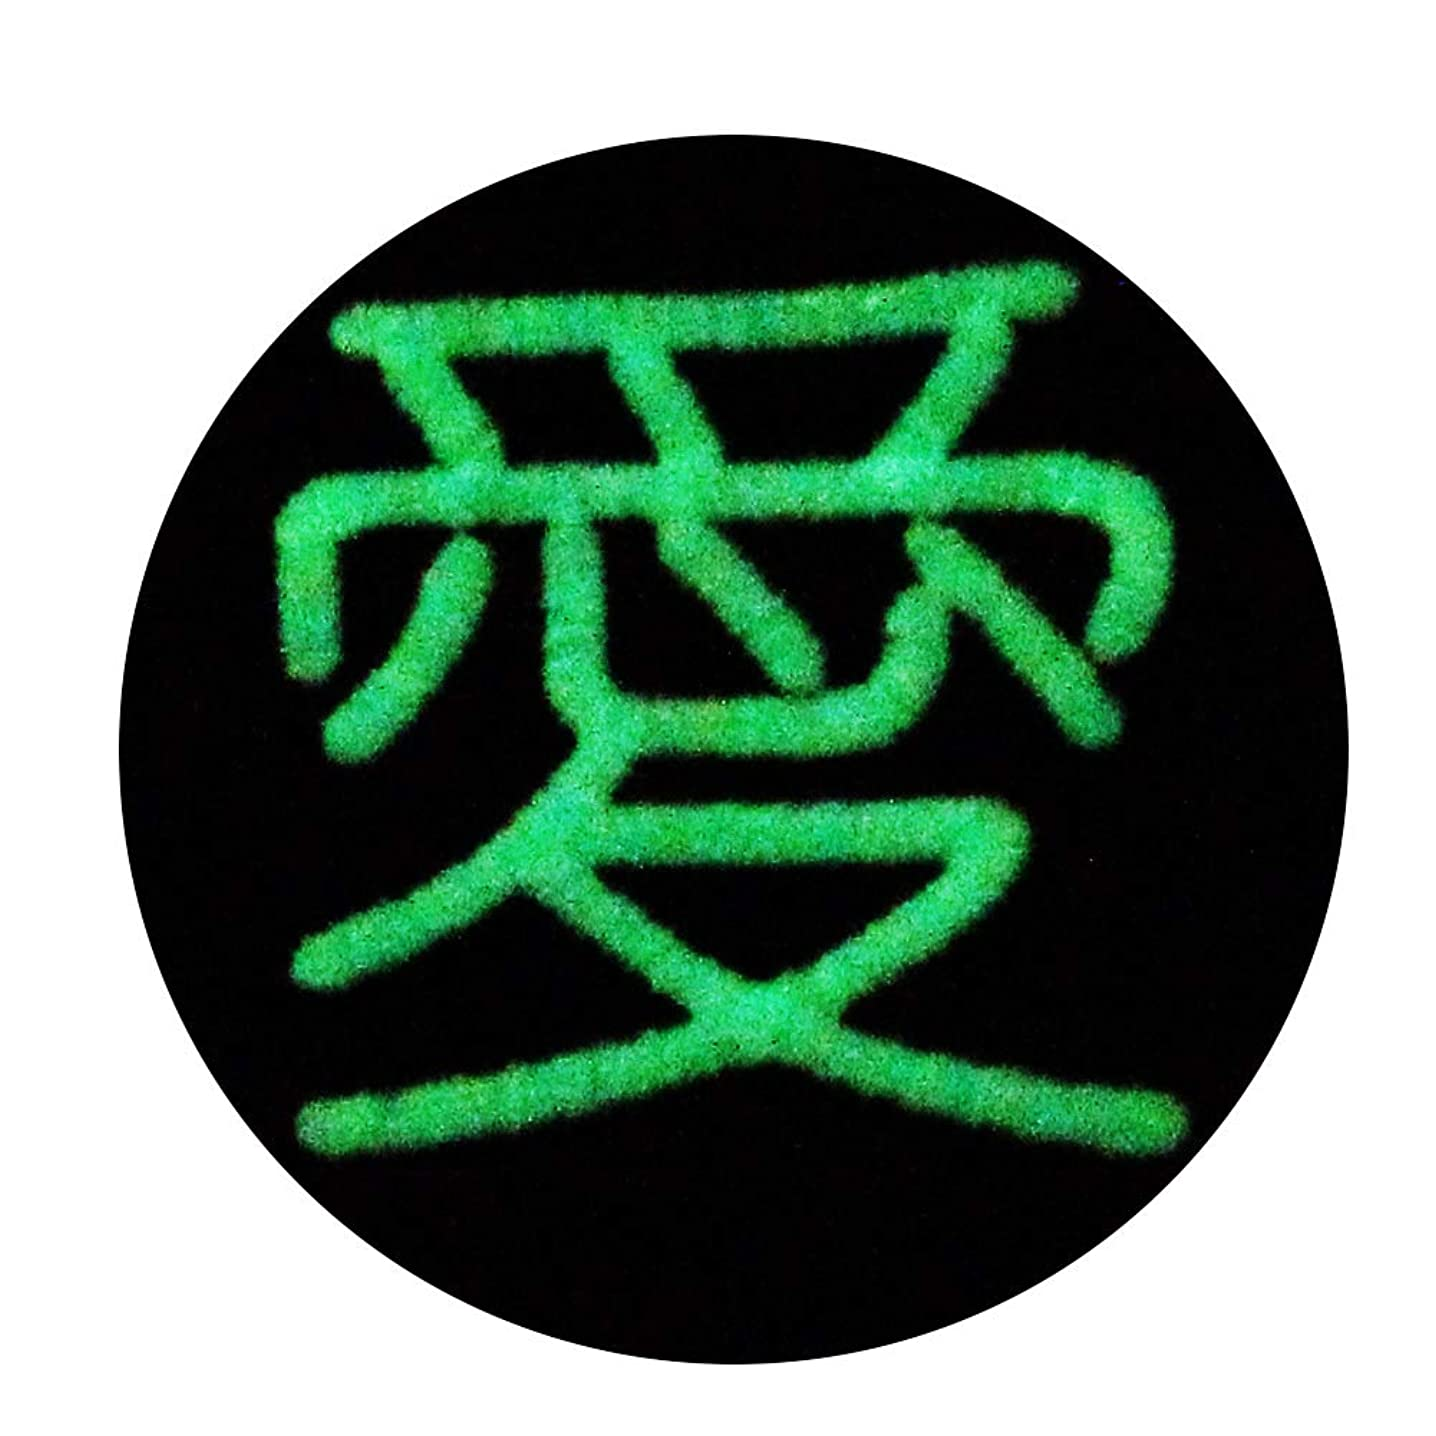 Glow in Dark Love Chinese Word Patch Embroidered Badge Fastener Iron On Sew On Emblem